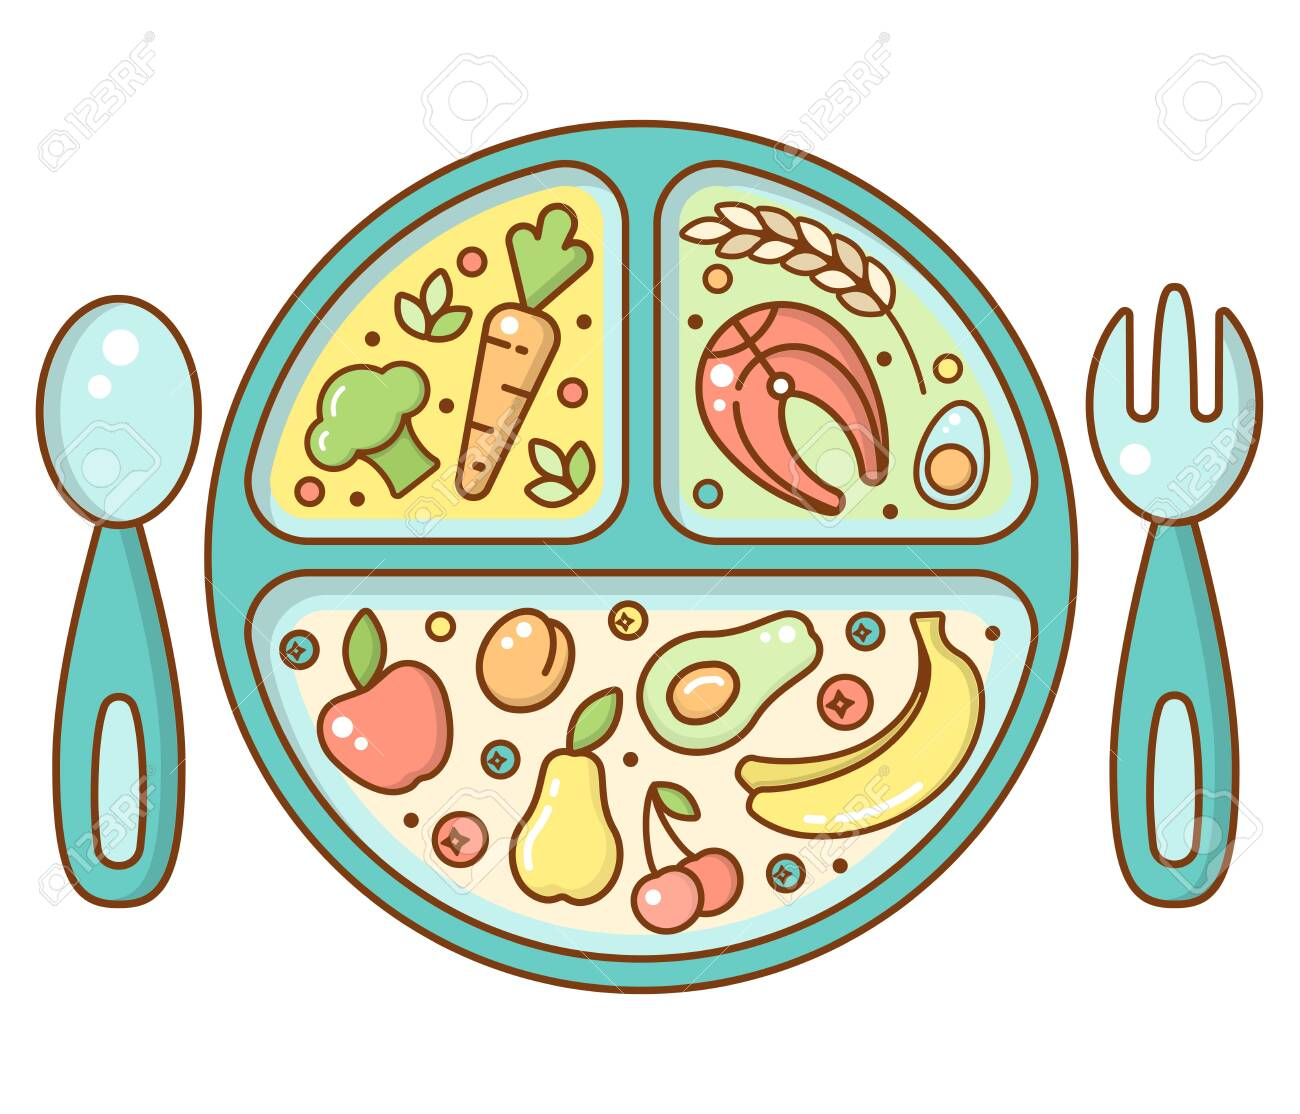 Baby Food Plate In Bright Cartoon Style Suitable For Advertising Royalty Free Cliparts Vectors And Stock Illustration Image 123158896